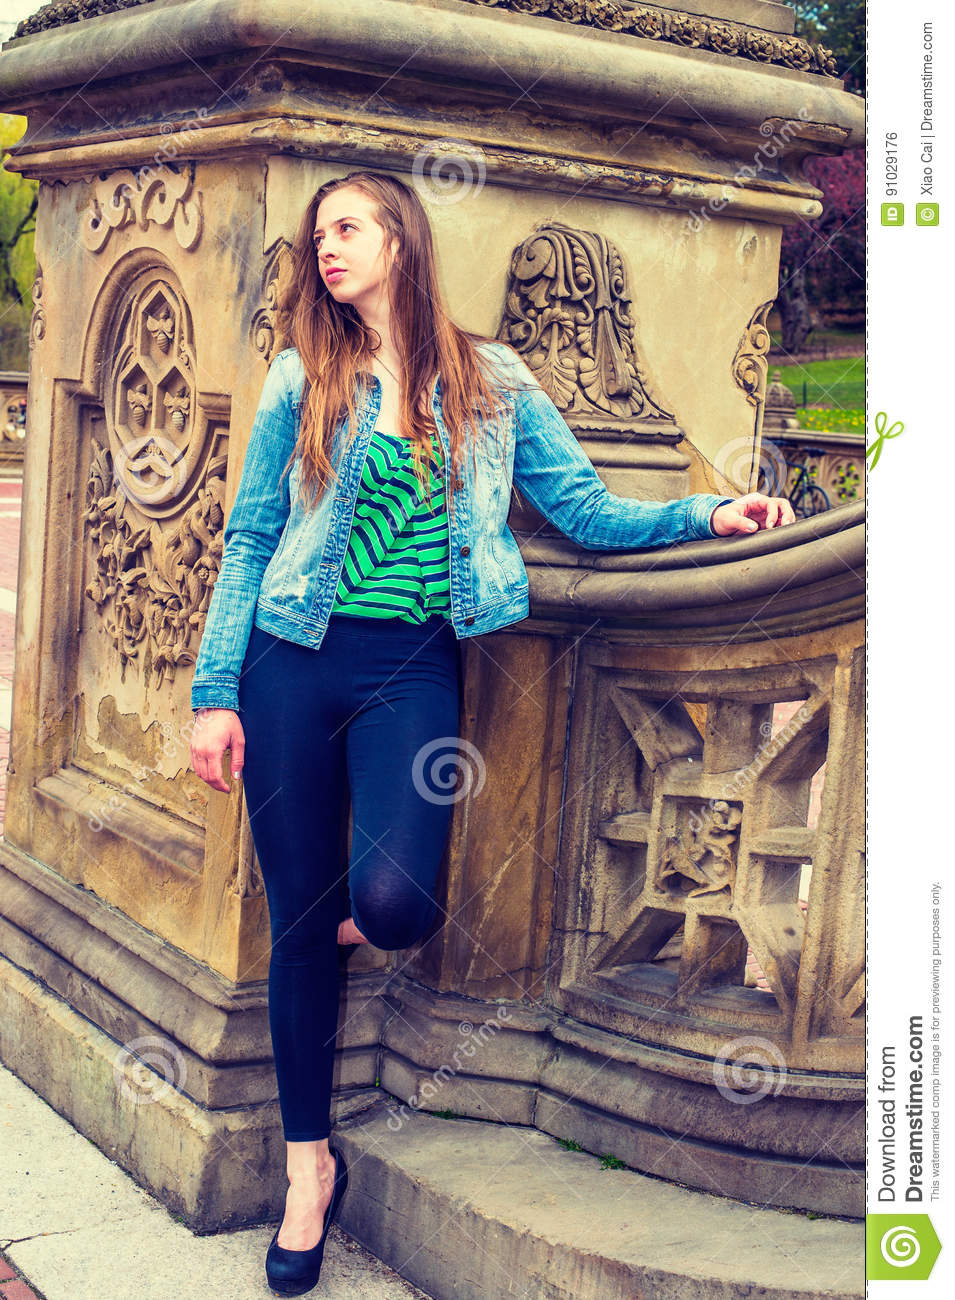 82a8e8fd4d7 American Teenage Girl Missing You At Central Park In New York. Stock ...